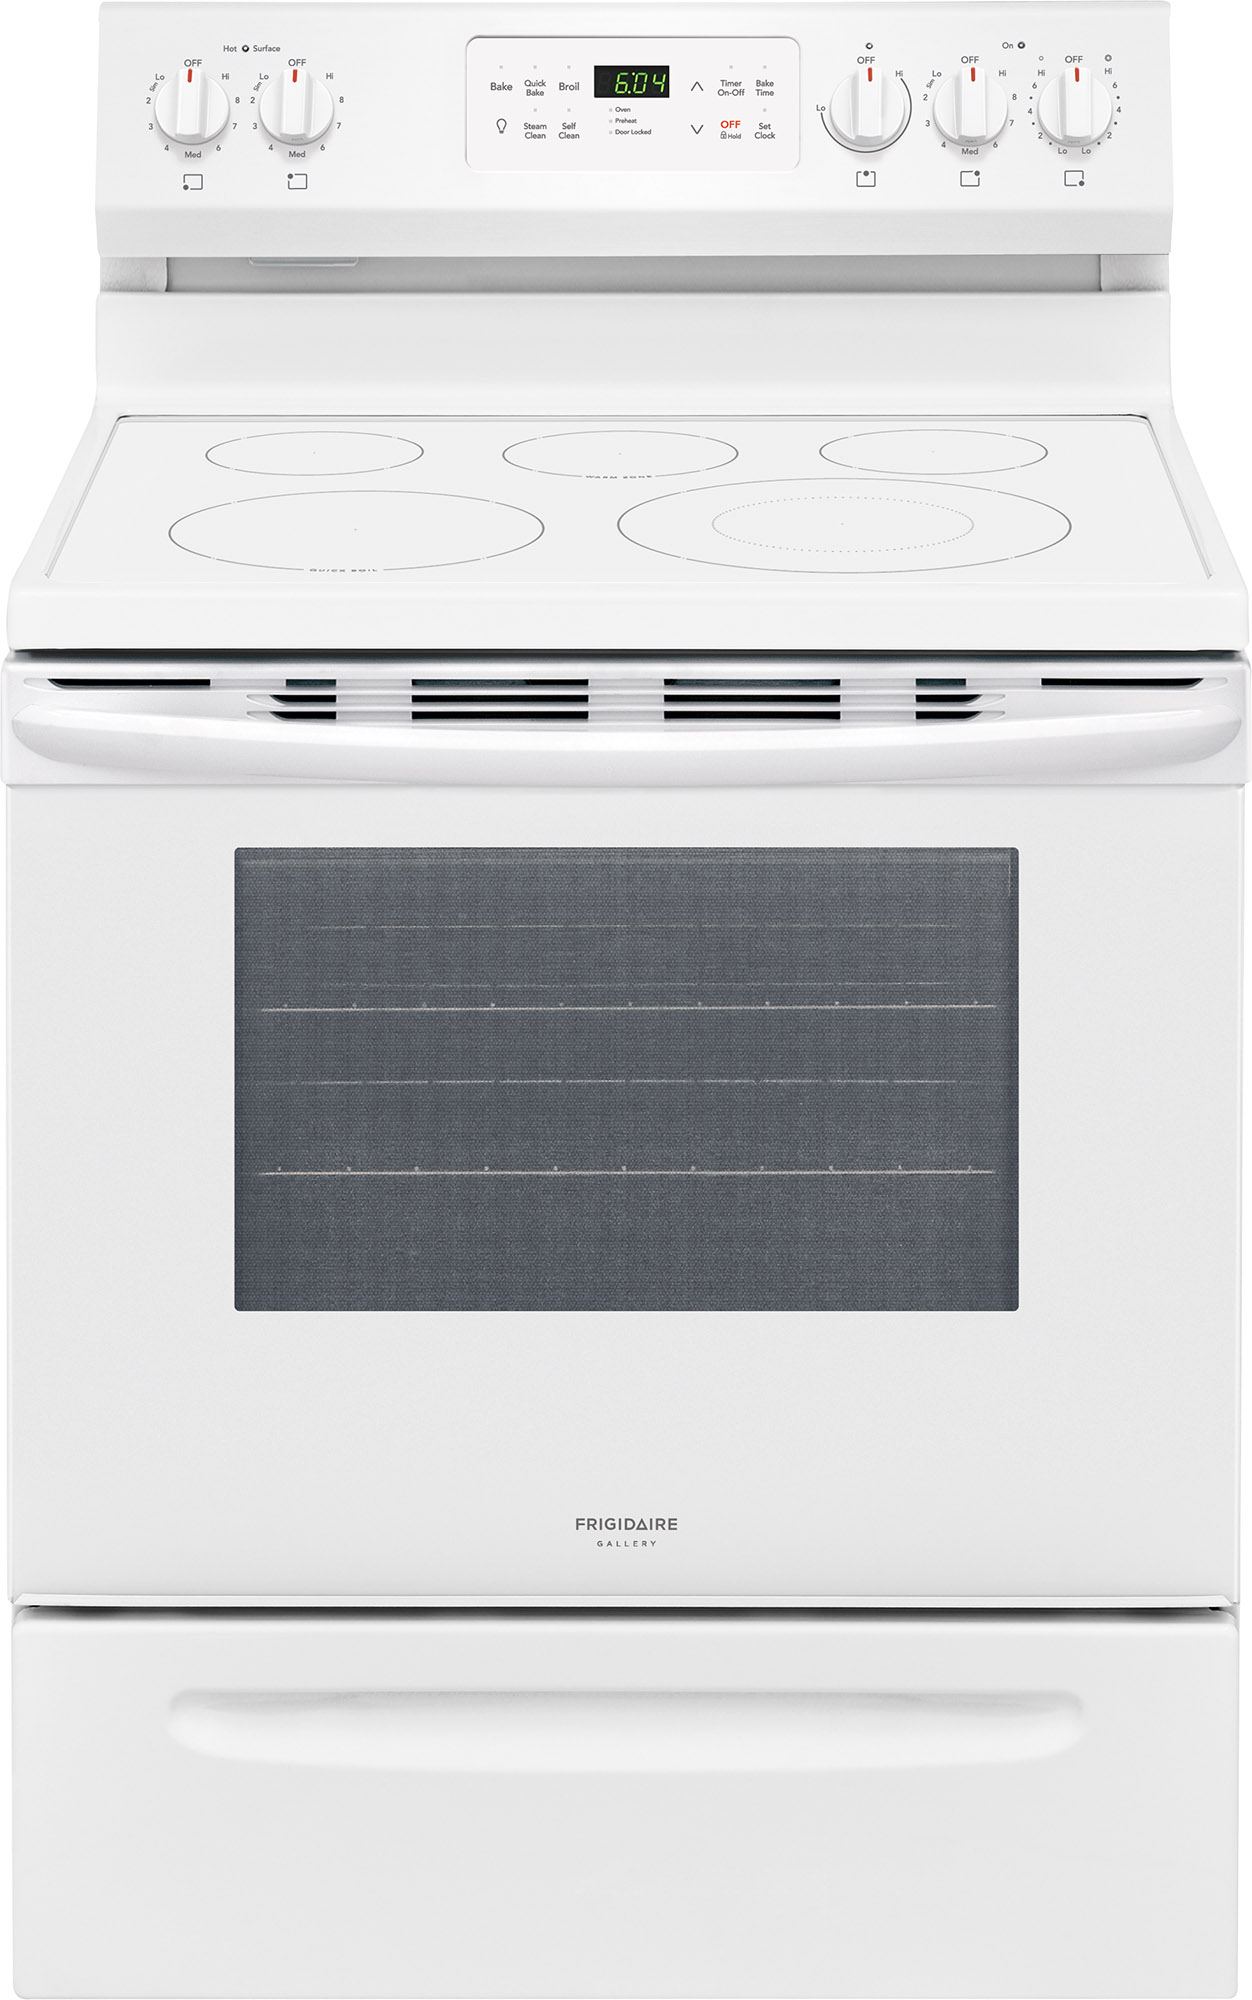 Frigidaire Gallery 30 Free Standing Electric Range White FGEF3036TW